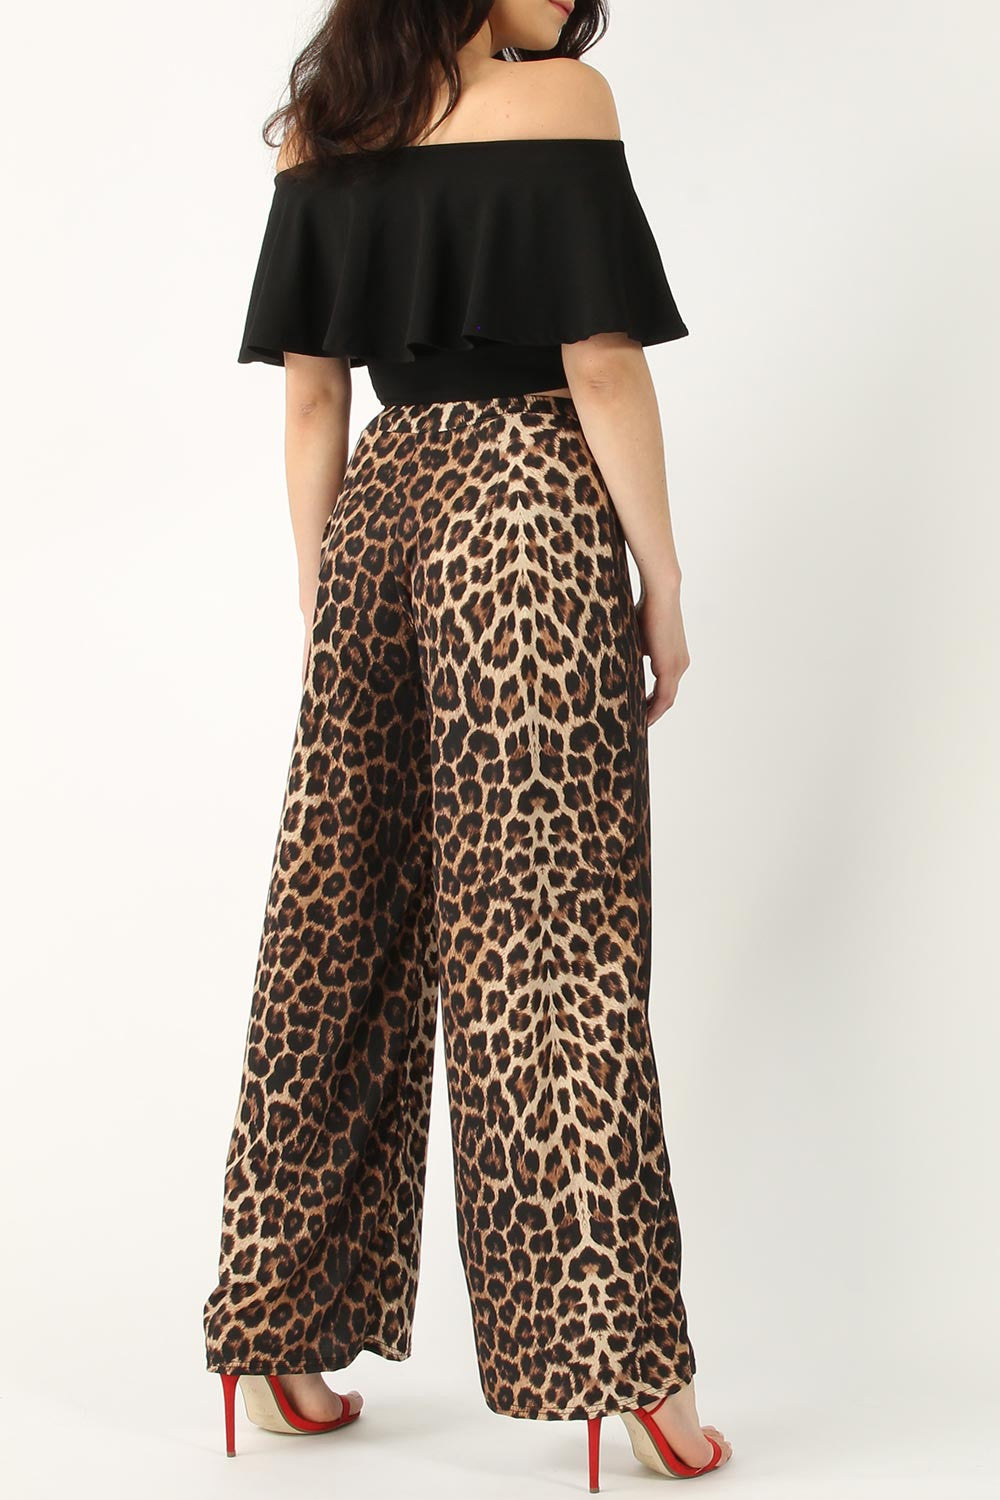 LEOPARD WIDE LEG TROUSERS